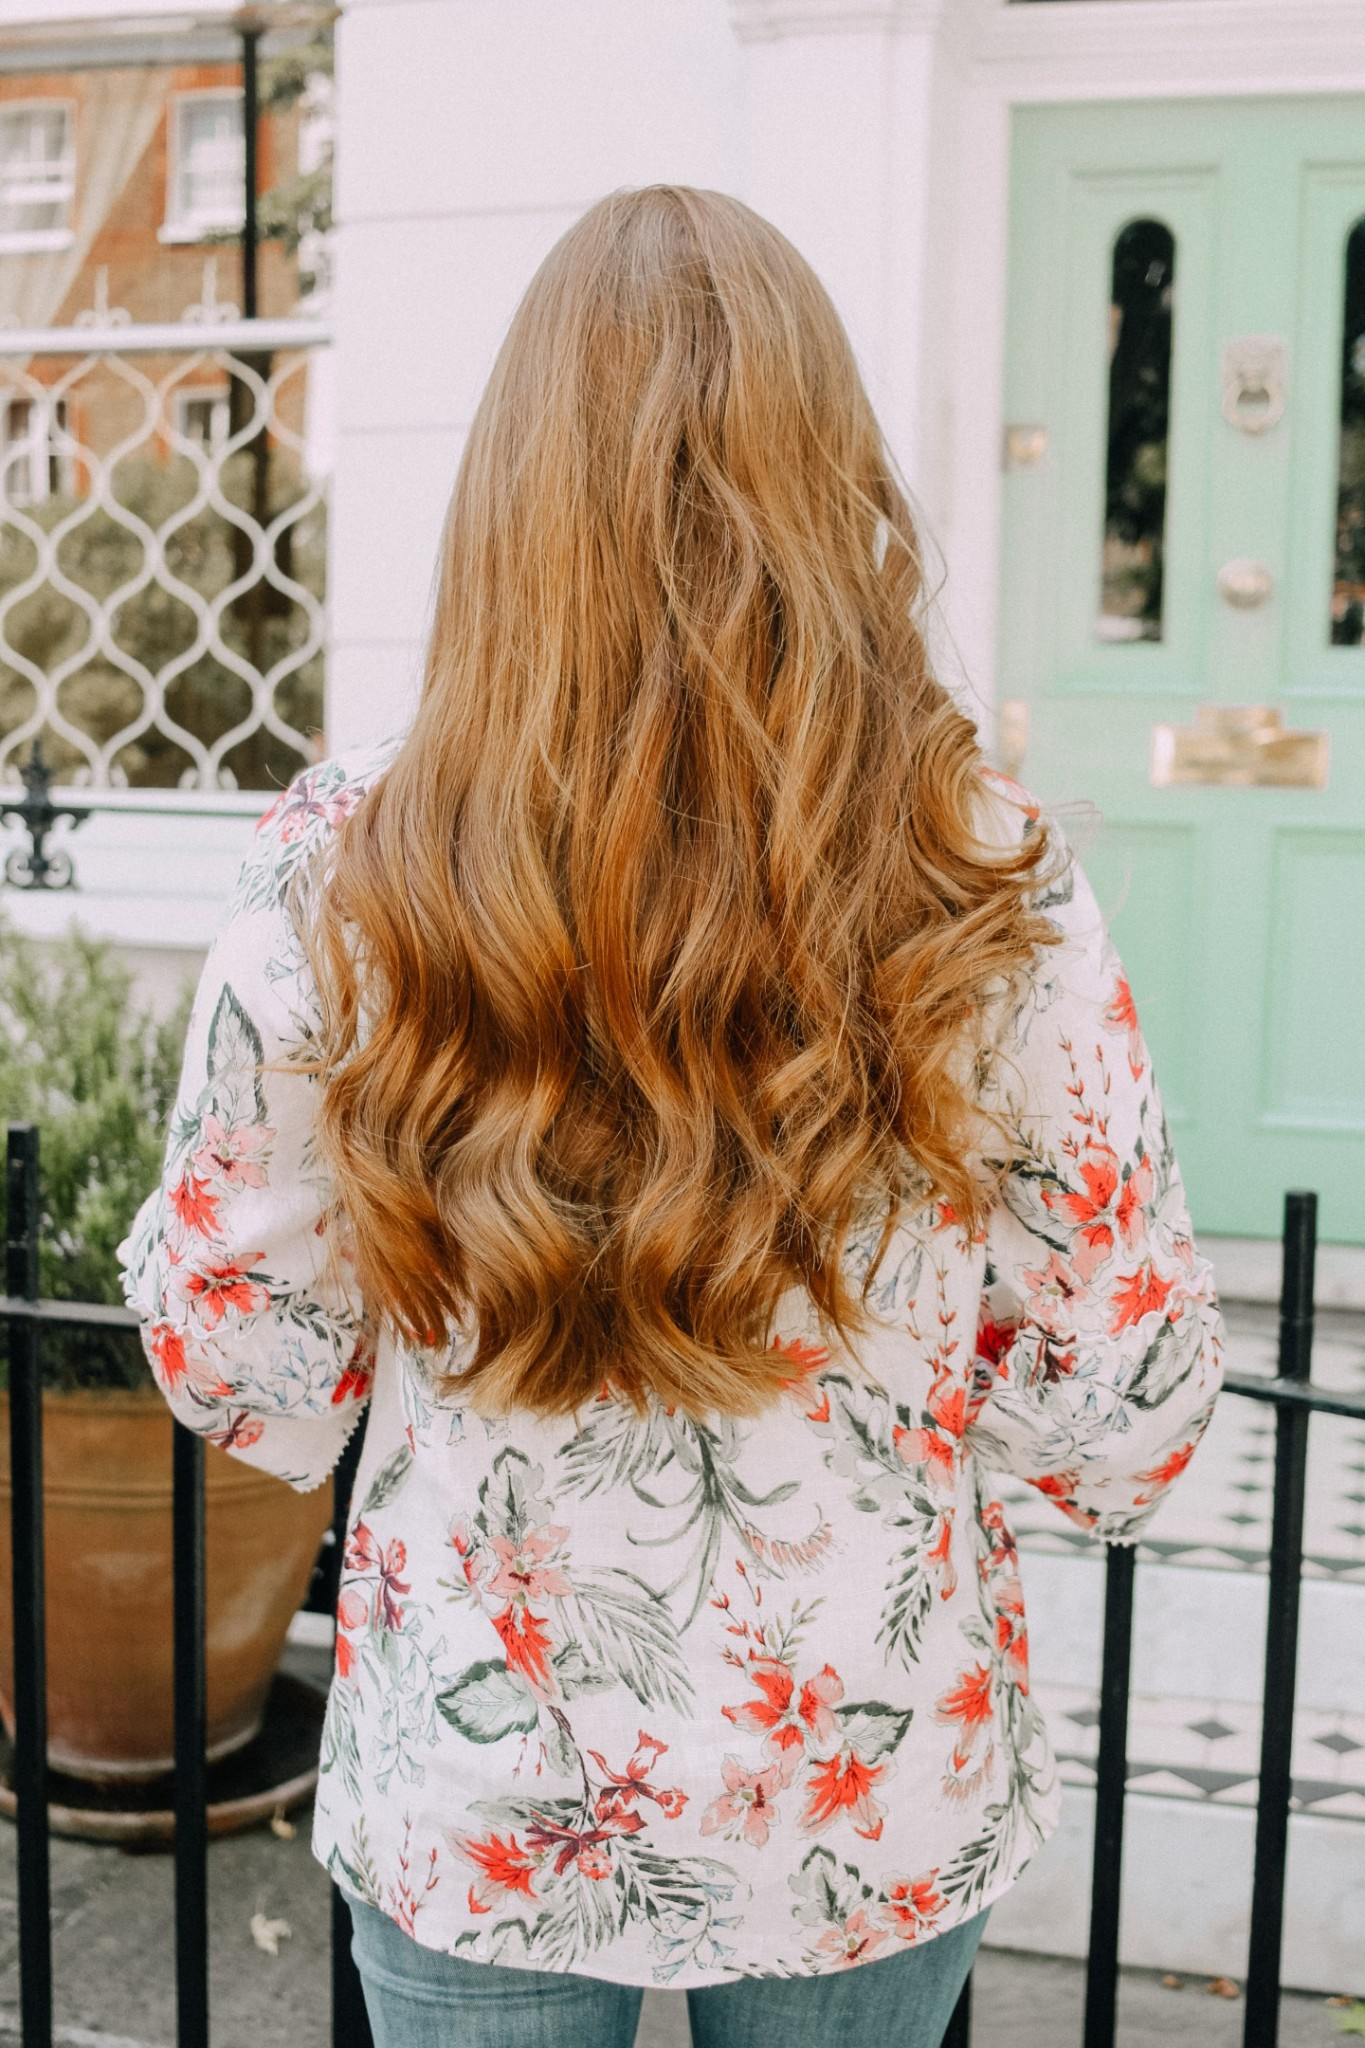 Lifestyle blogger Mollie Moore shares 7 tips on how to protect your hair against hard water